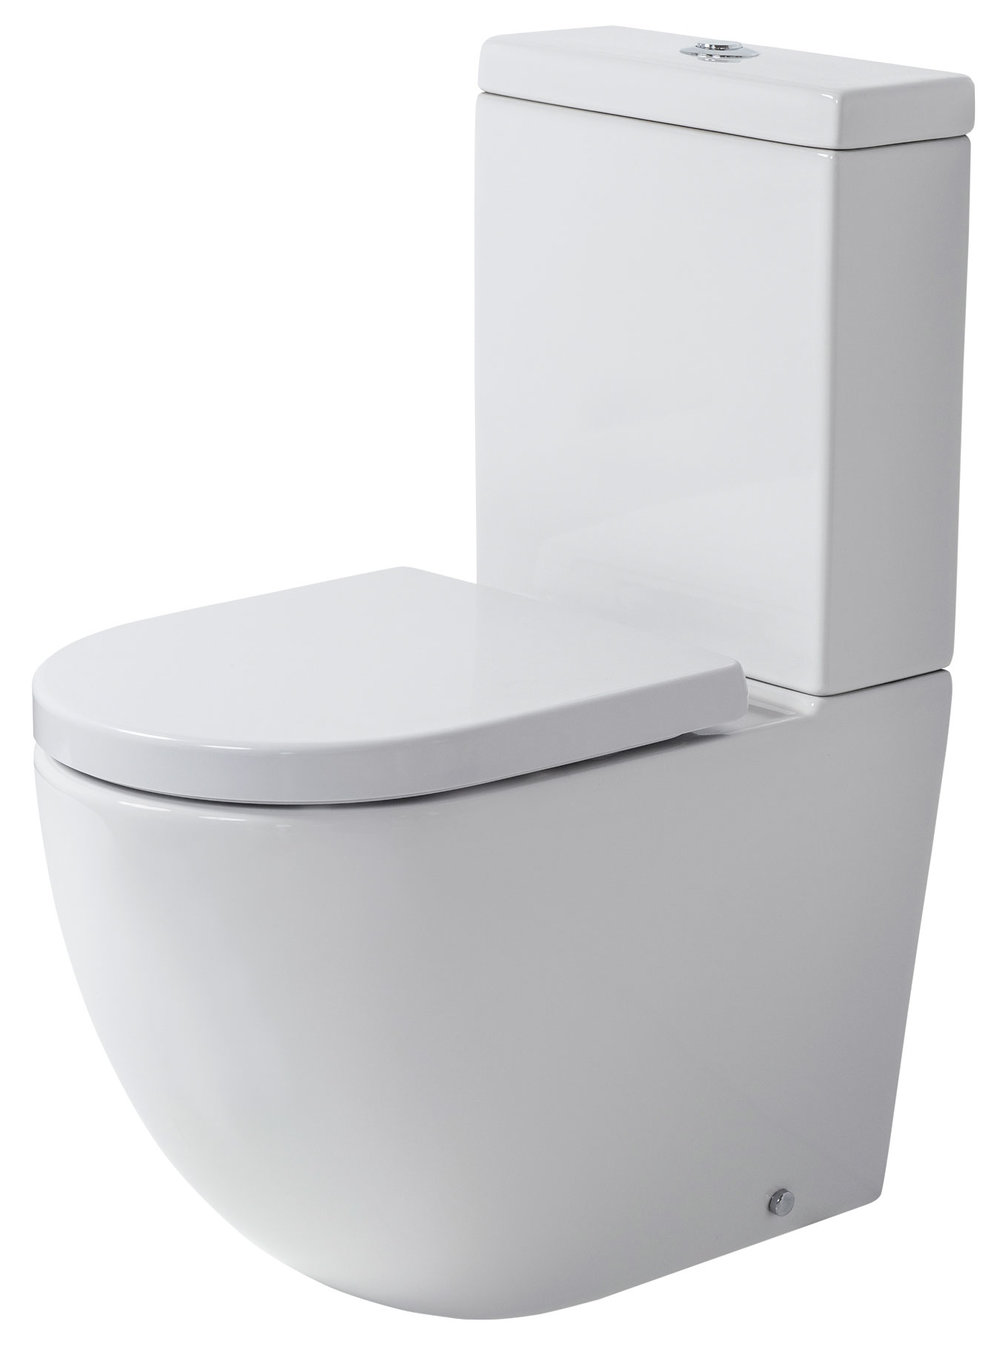 VCBC Rest Rimless Toilet Suite